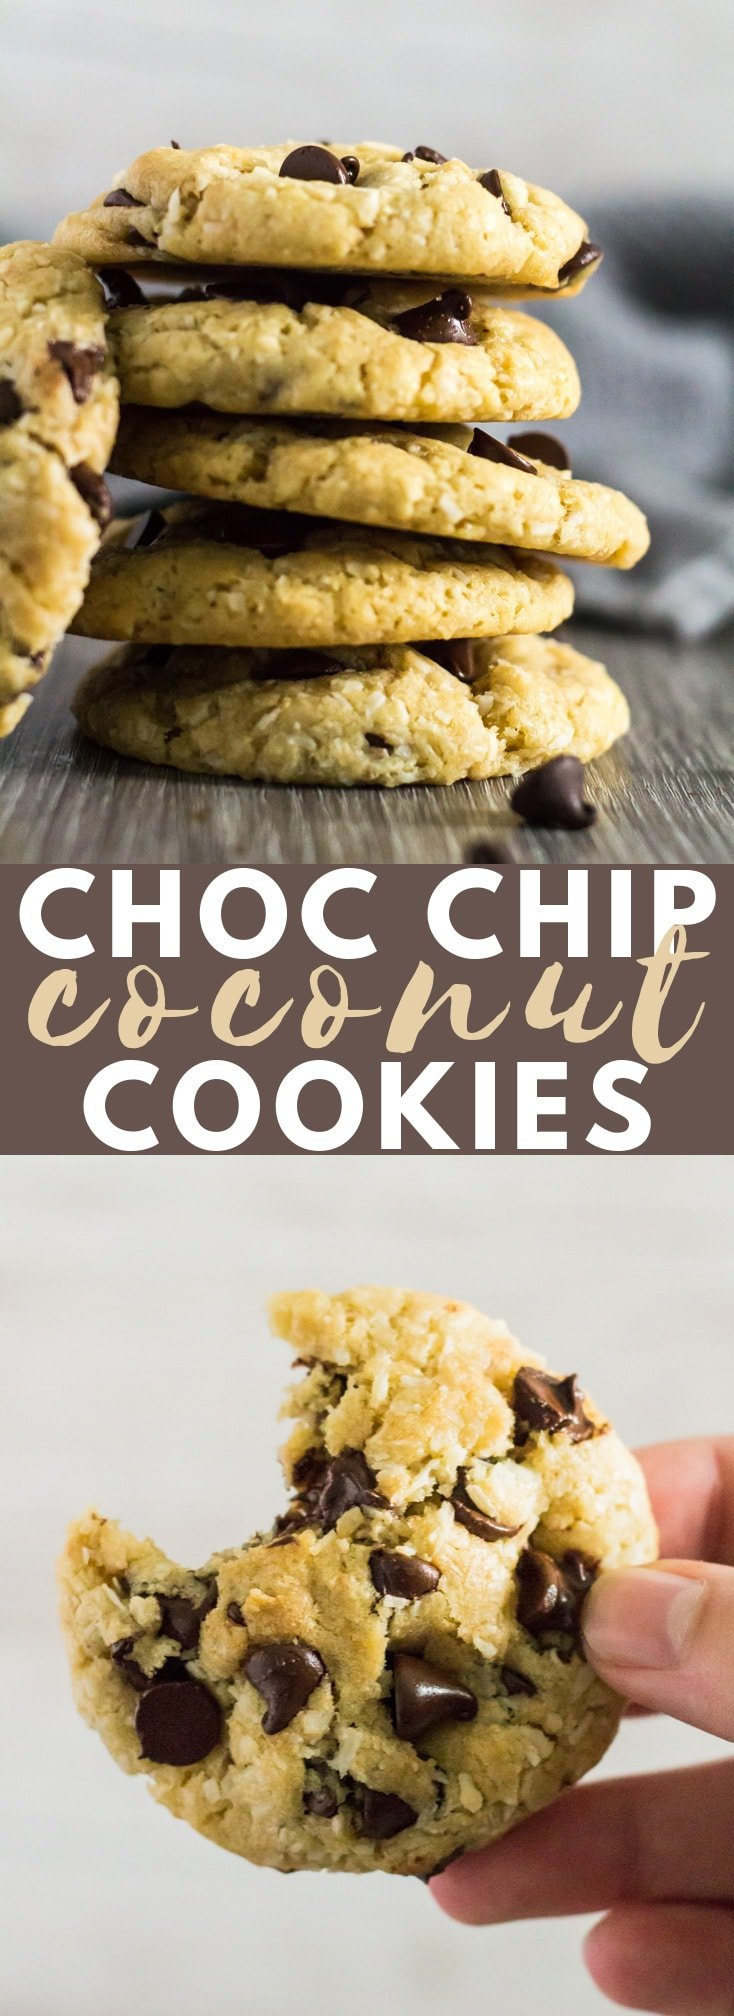 Coconut Chocolate Chip Cookies - Deliciously thick and chewy cookies that are loaded with desiccated coconut and and chocolate chips. These are the PERFECT cookies for coconut lovers! #coconut #cookies #chocolatechipcookies #recipe